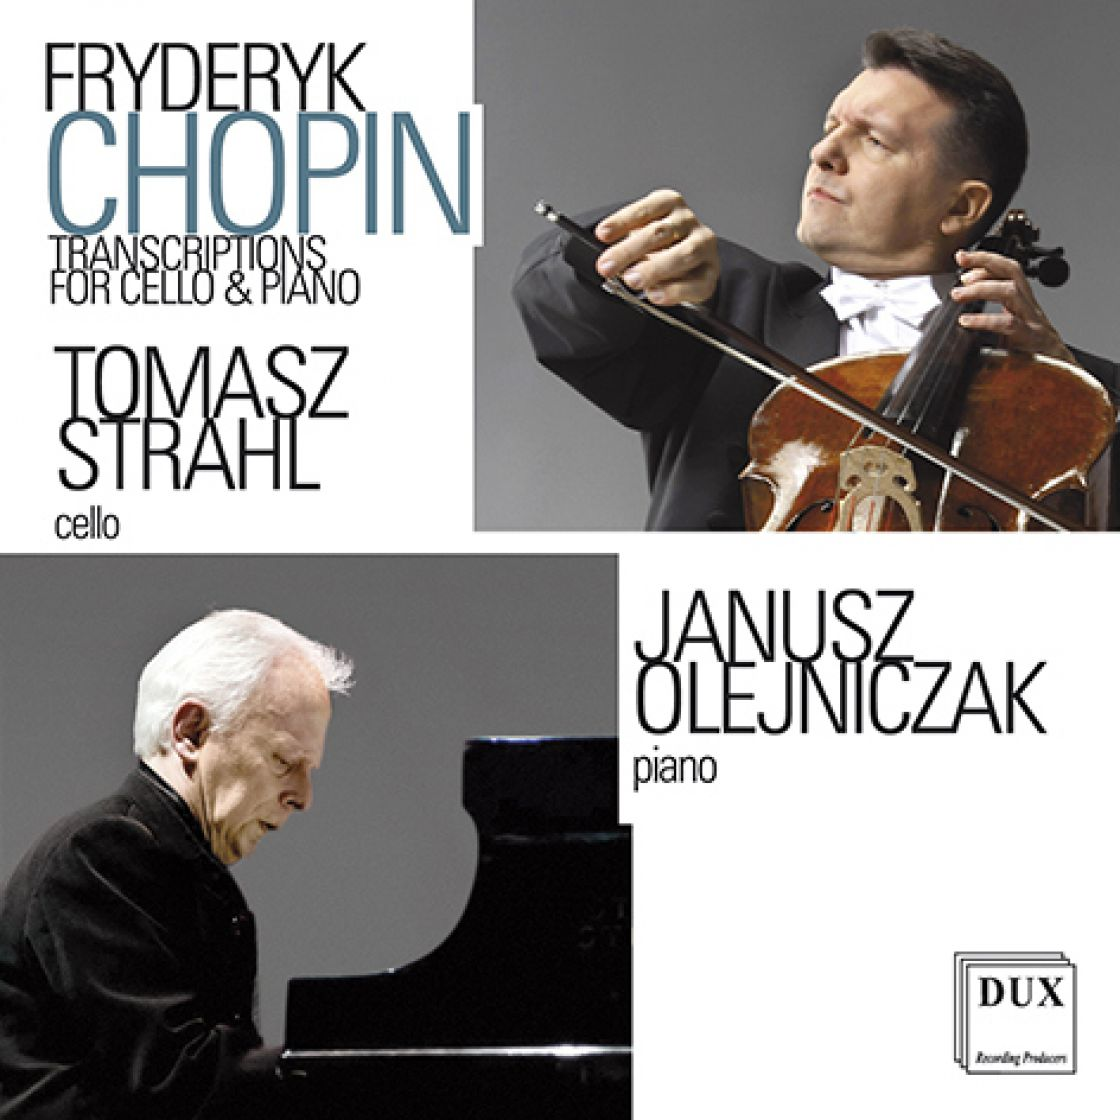 Fryderyk Chopin - Transcriptions for cello & piano